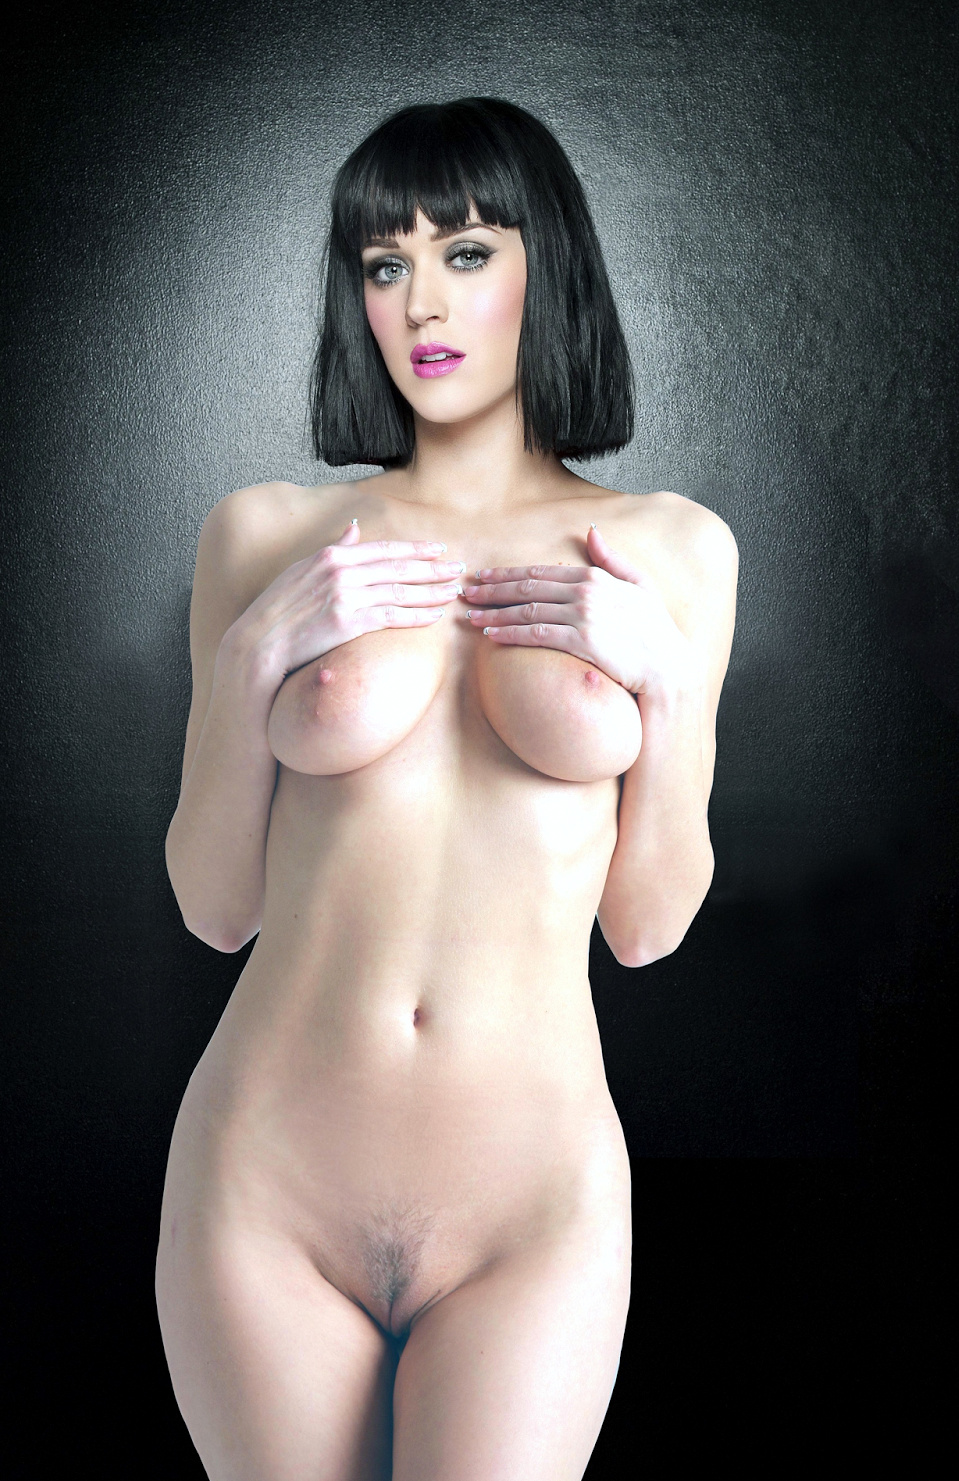 Katy perry naked and with a dildo 12